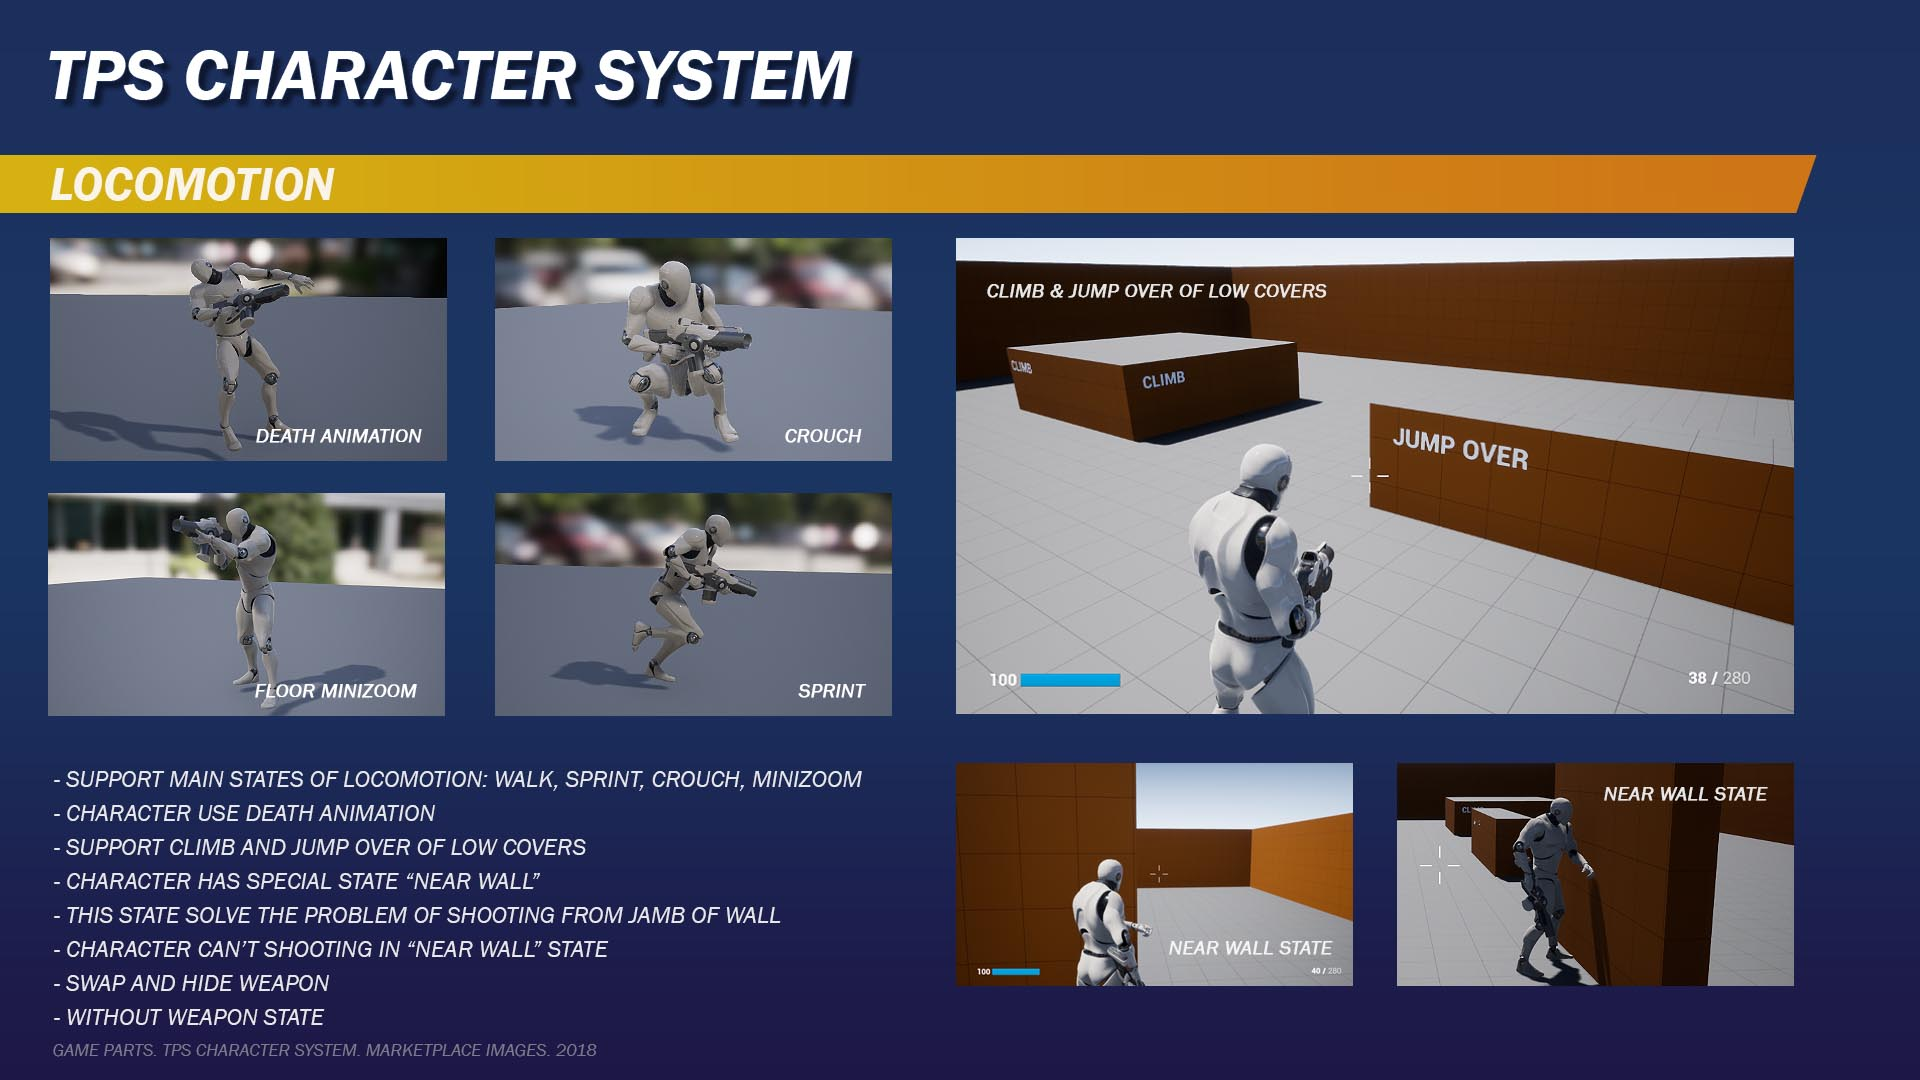 TPS Character System by Game Parts in Blueprints - UE4